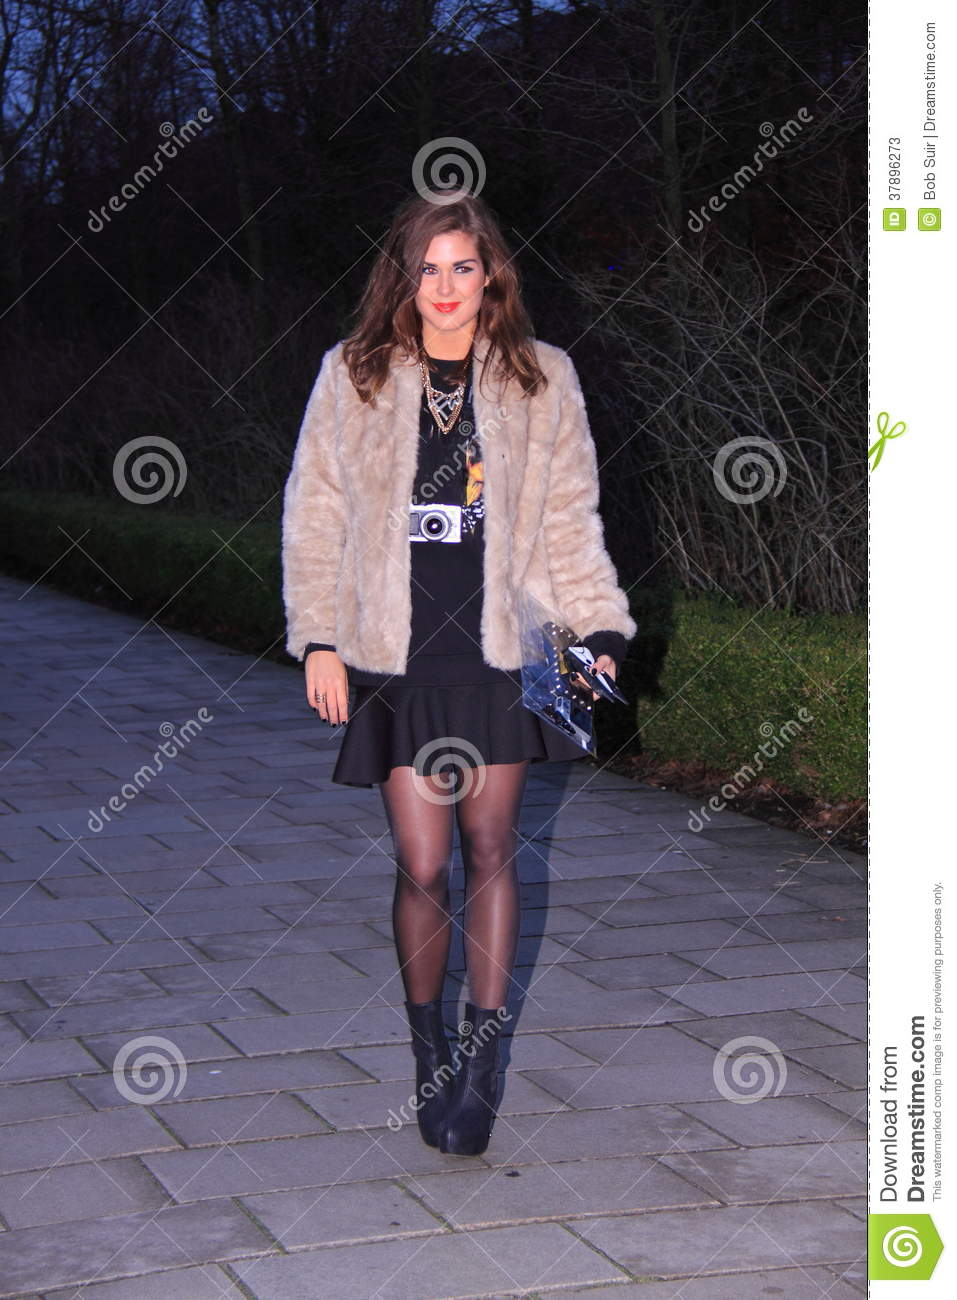 Amsterdam Street Style Fashion Editorial Stock Photo Image 37896273